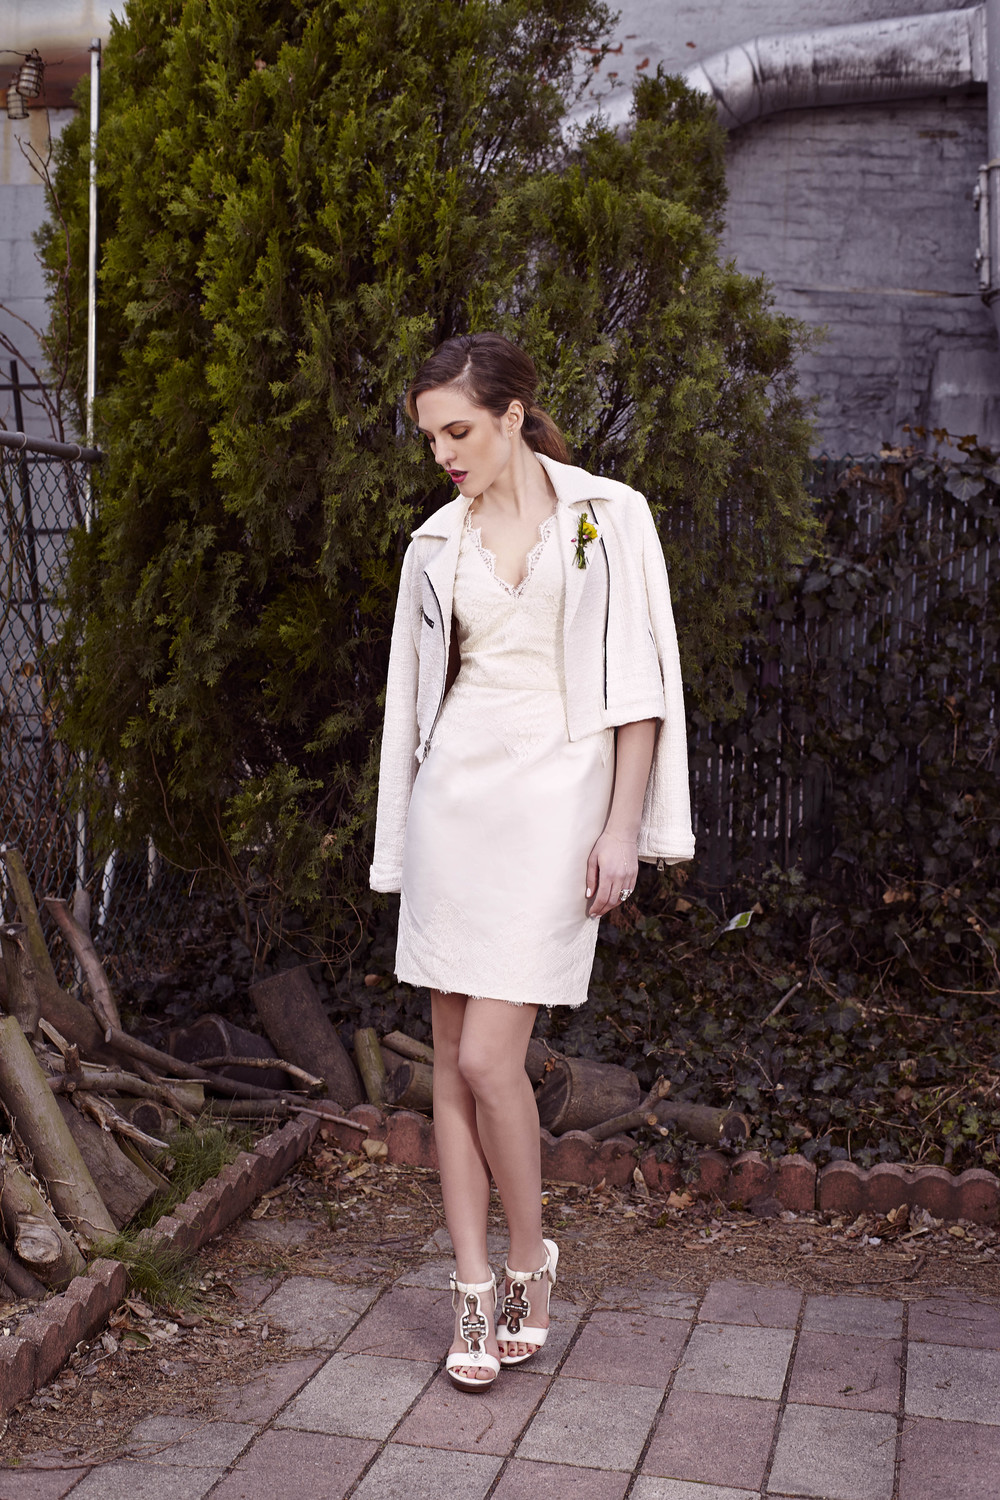 Wulfina Moto Jacket over Tilda dress, Bridal Collection